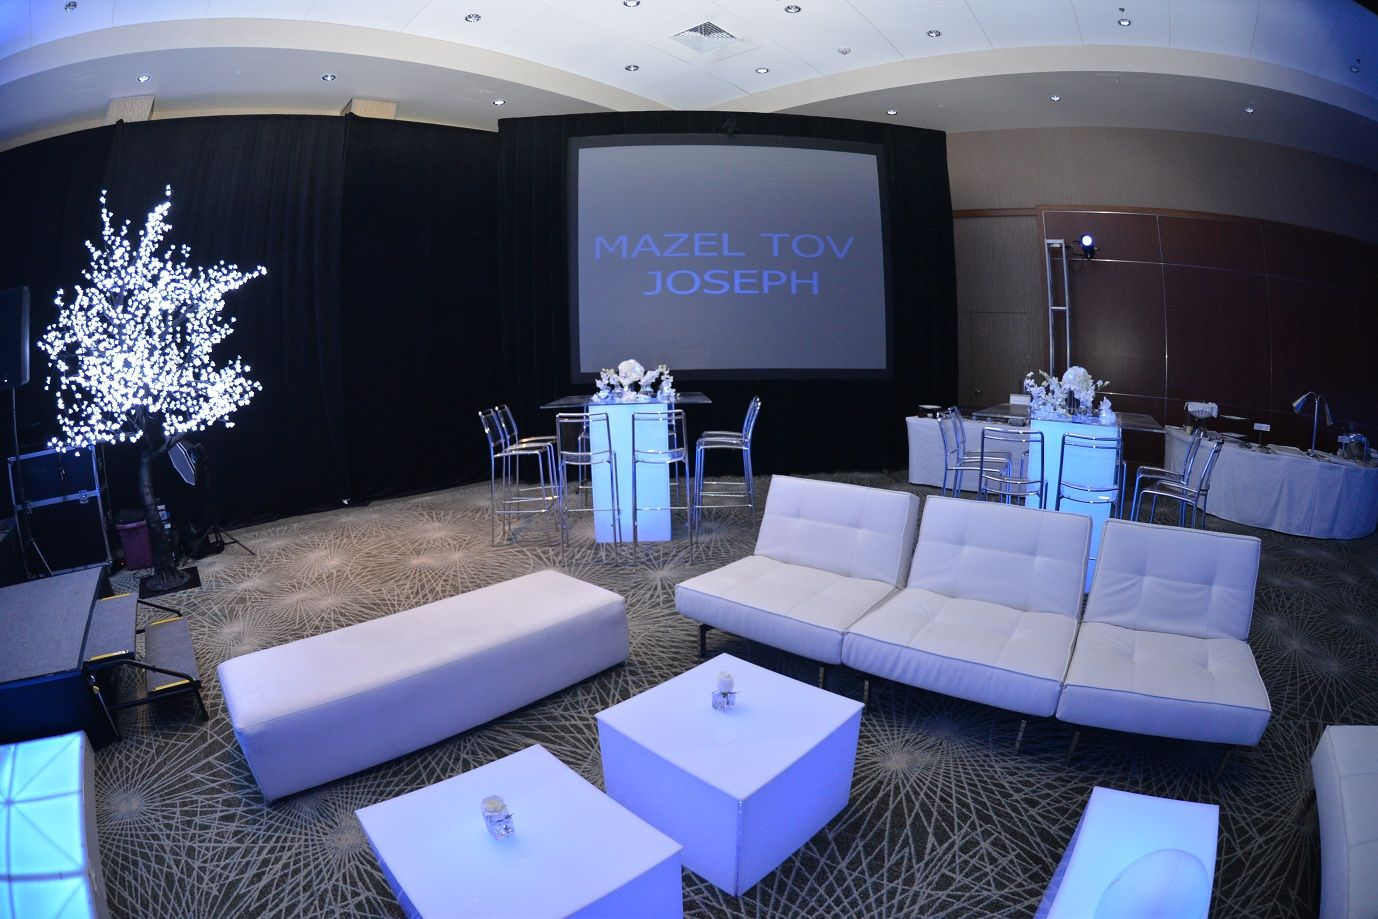 kool furniture. White Lounge Furniture From Kool Party Rentals And Black Draping PSAV  Creates A Dramatic Feel That Gets The Celebration Started! #westingaslampevents Kool